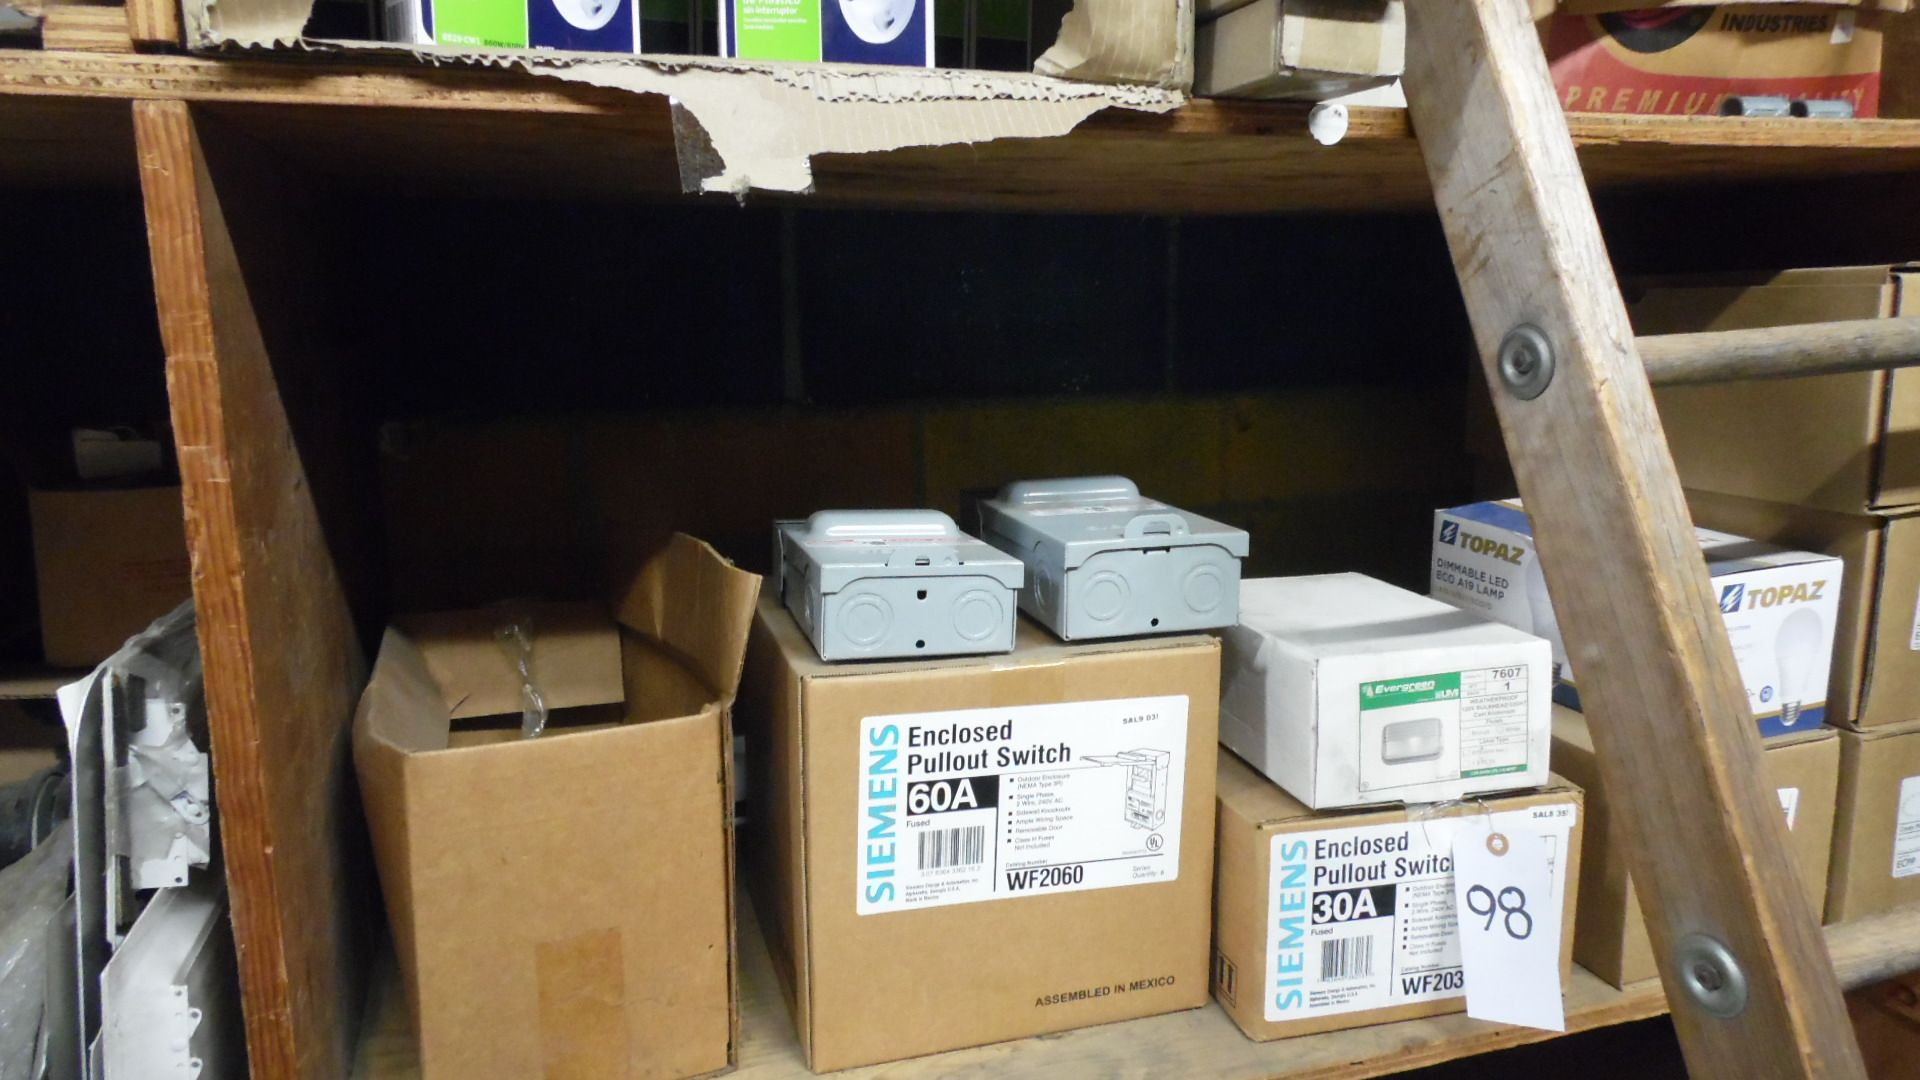 Lot 98 - SIEMENS PULLOUT SWITCHES / POWER OUTLETS